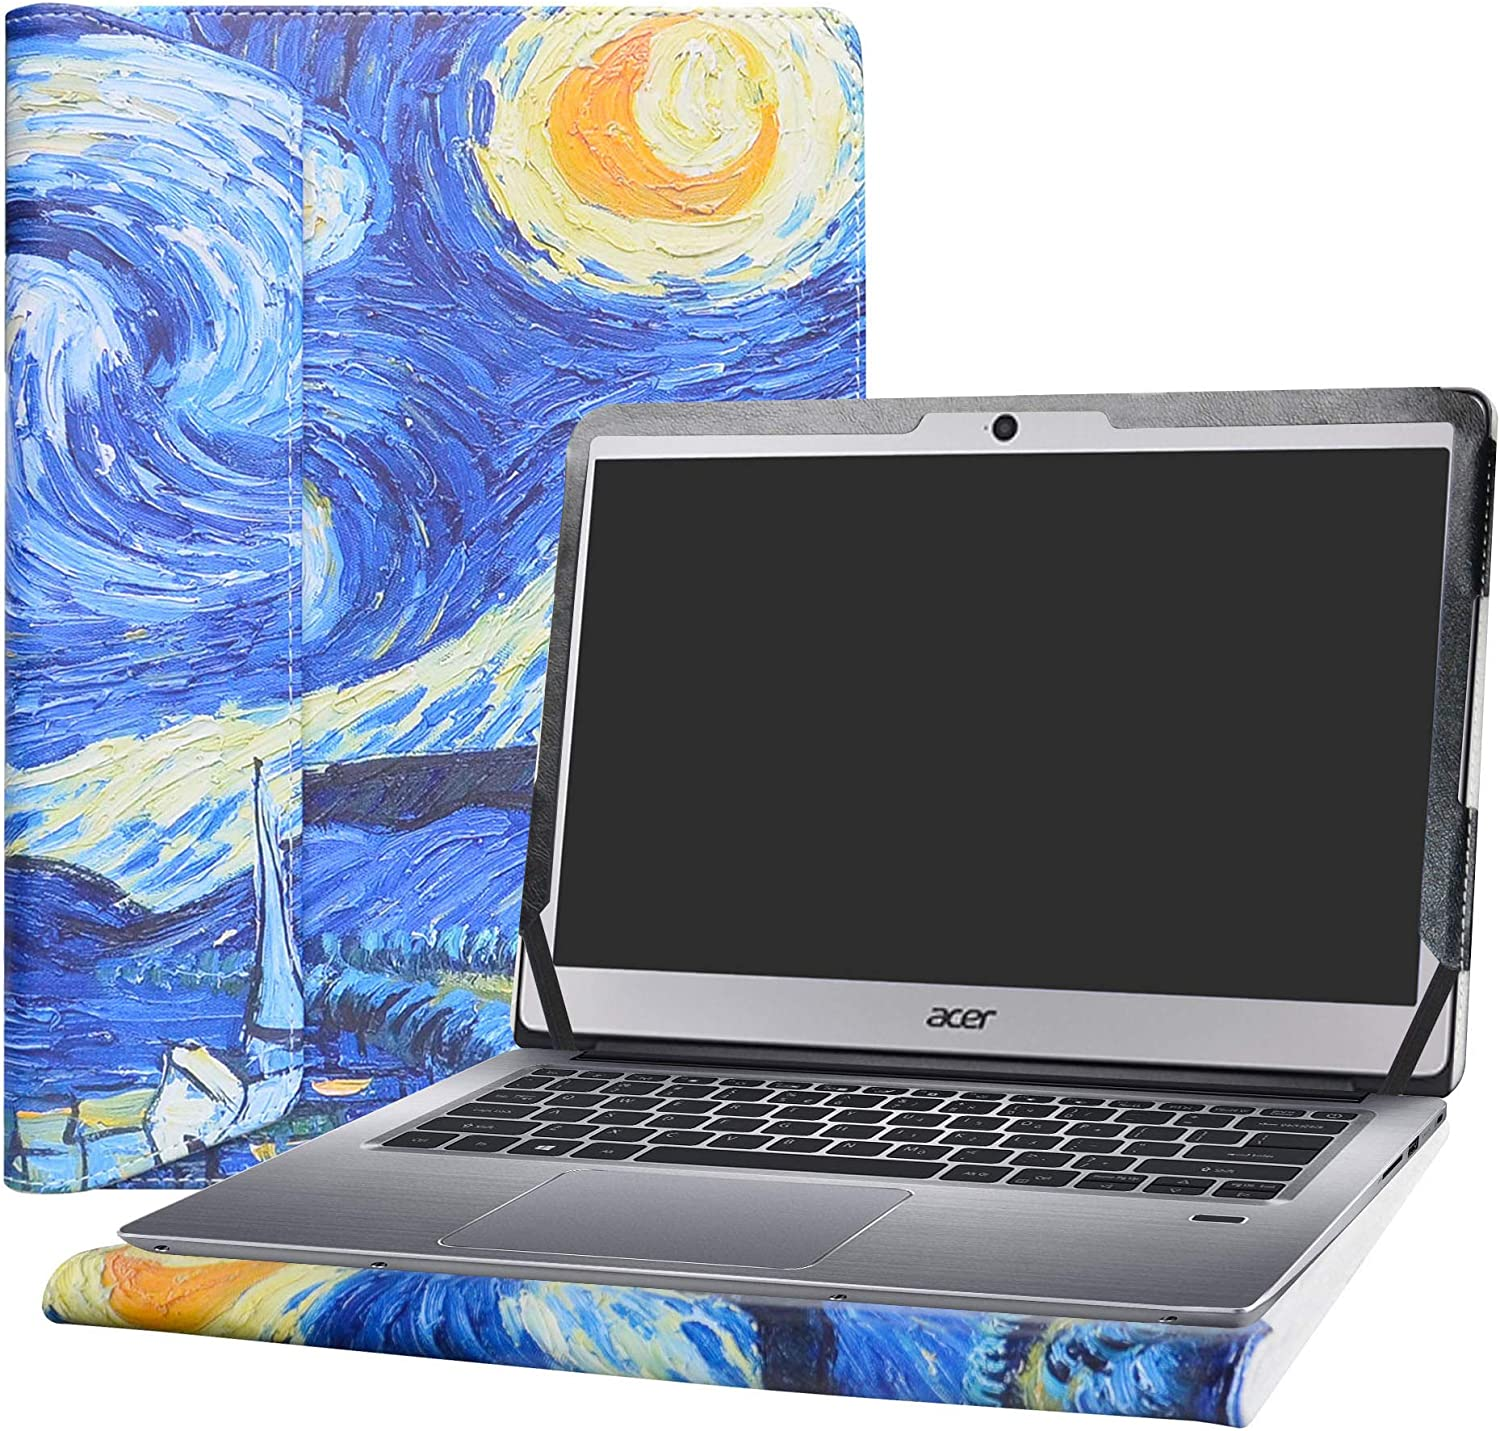 "Alapmk Protective Case Cover for 14"" ACER Swift 3 14 SF314-51 SF314-52 SF314-52G SF314-53G Series Laptop(Warning:Not fit Swift 3 14 SF314-54 SF314-54G Series),Starry Night"